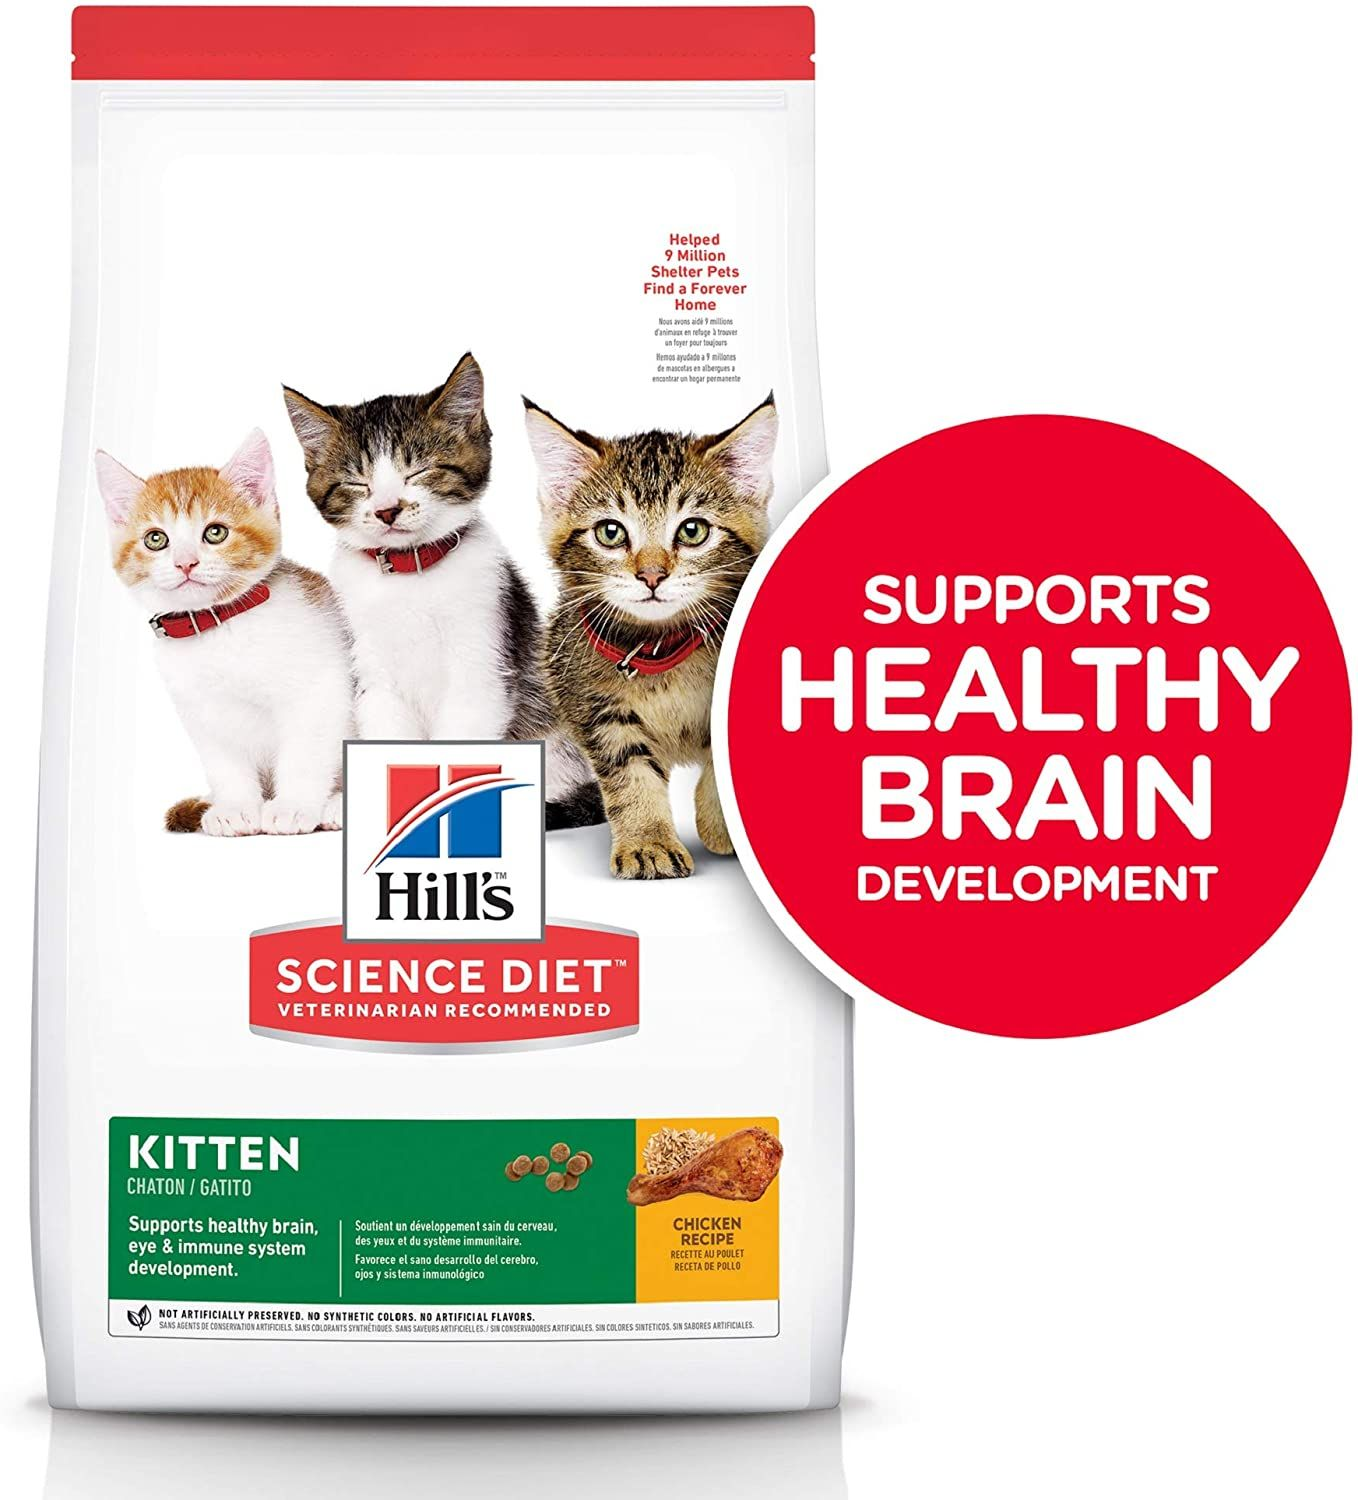 Hill S Science Diet Dry Cat Food In 2020 Hills Science Diet Science Diet Dry Cat Food